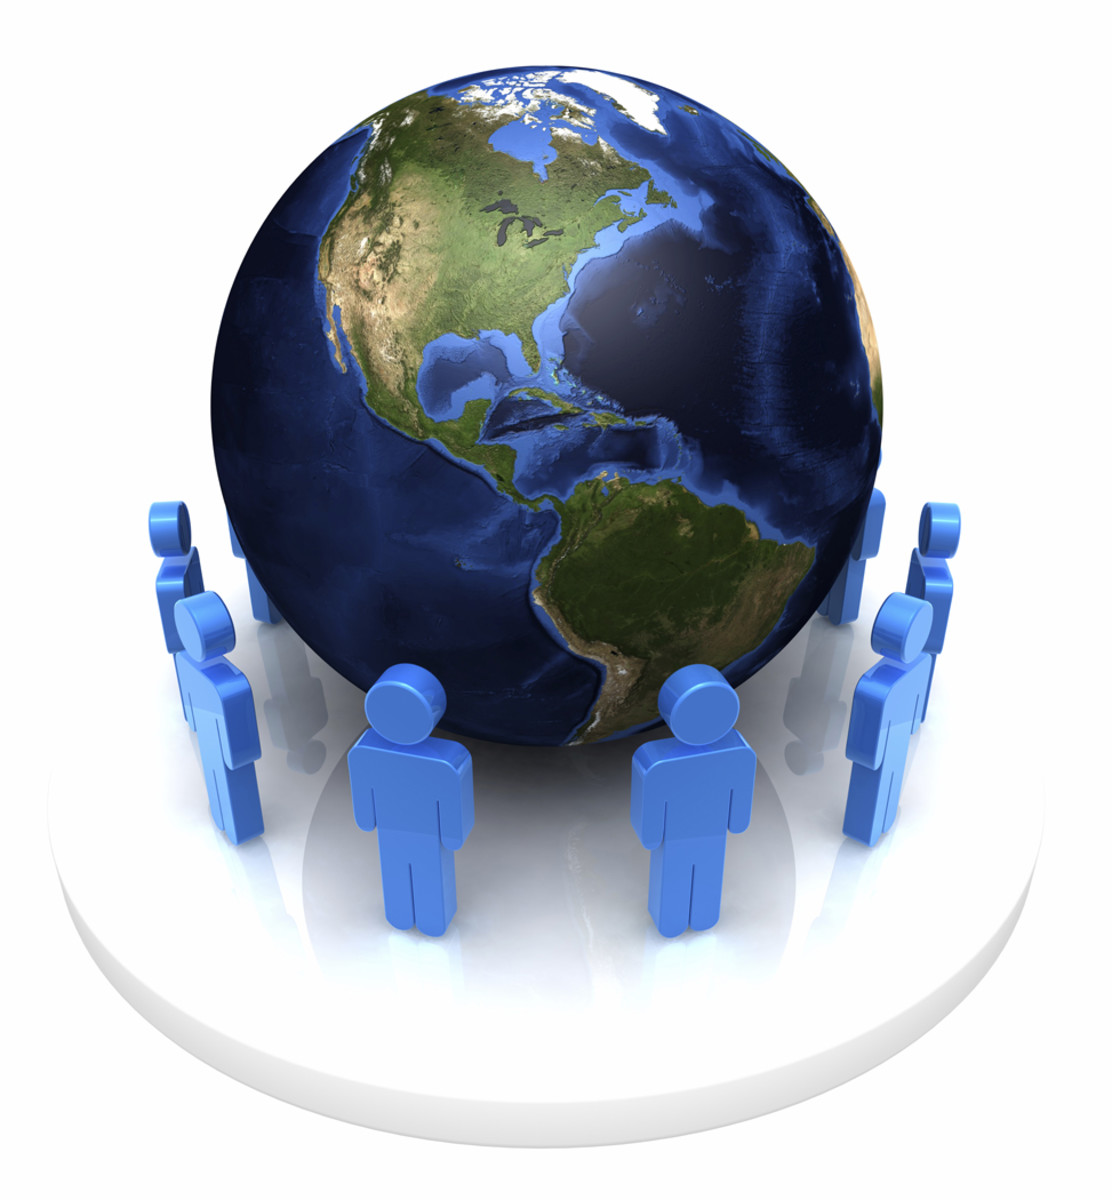 HubPages is a global community and topics related to the site are needed!